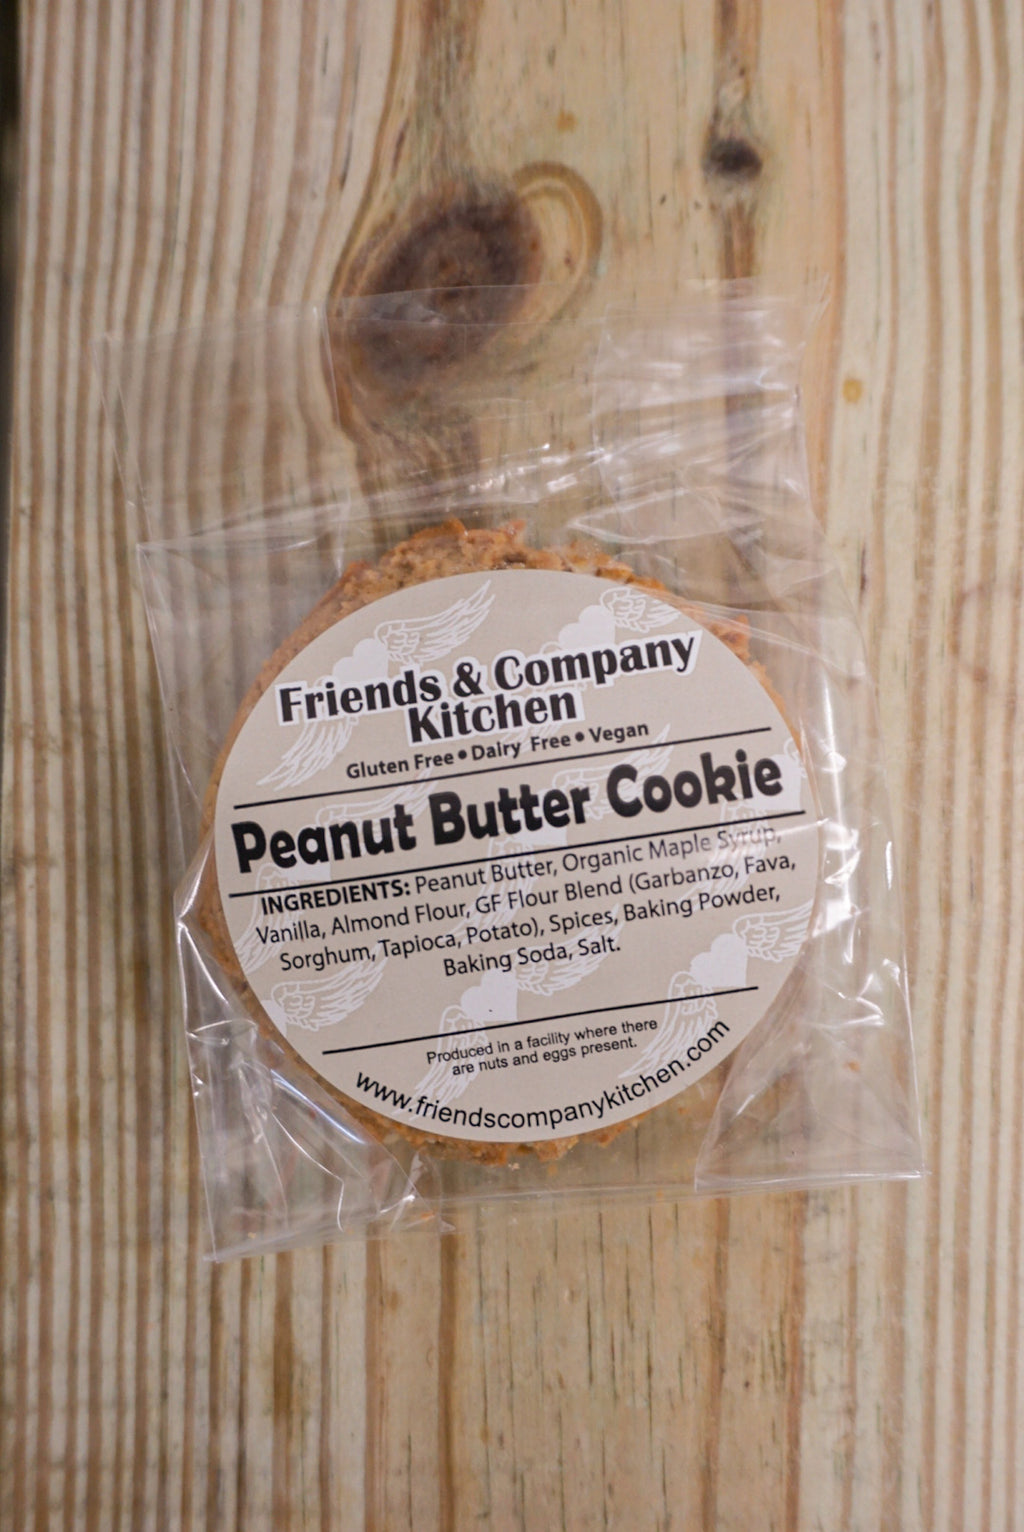 Friends & Company Kitchen Peanut Butter Cookie - Westport